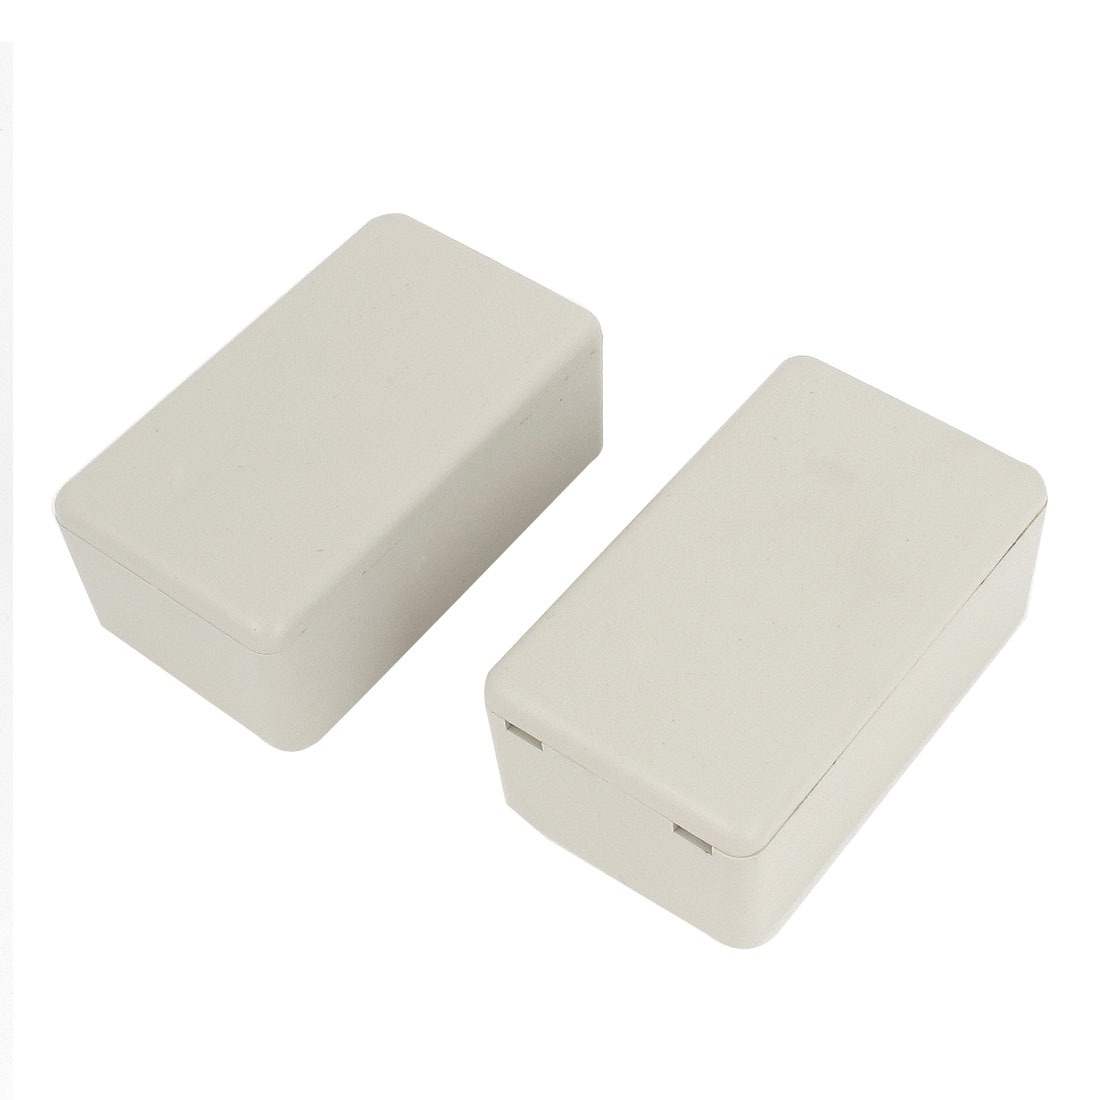 2 Pcs Sealed Plastic Enclosure Electronic Switch Junction Box Case 61 x 36 x 26mm